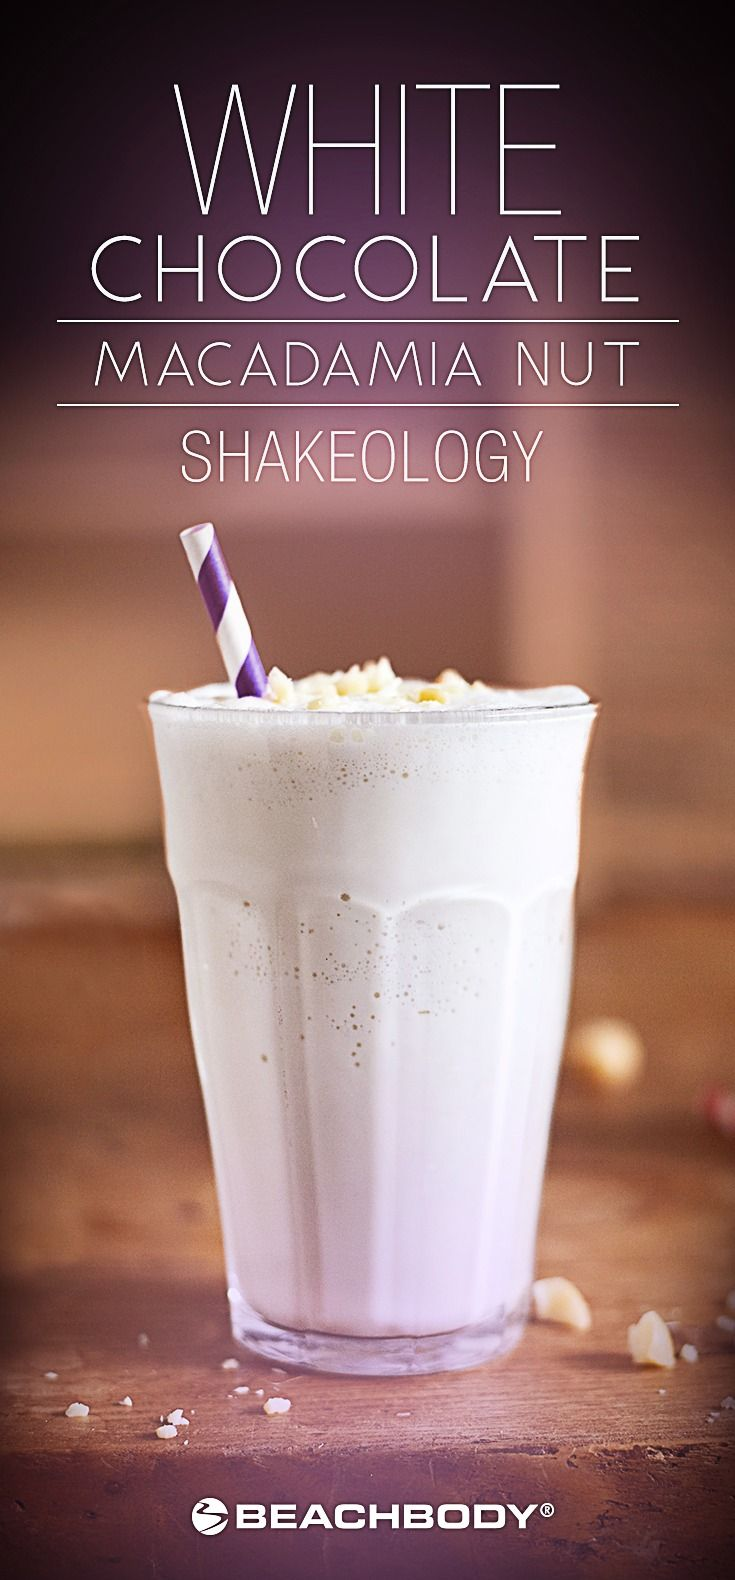 This White Chocolate Macadamia Nut Smoothie tastes like one of your favorite cookies, but drinks like a nutritious breakfast! // Shakeology // Recipe // Recipes // Shakeology Recipes // White Chocolate // Macadamia Nut // Smoothies // Beachbody // BeachbodyBlog.com